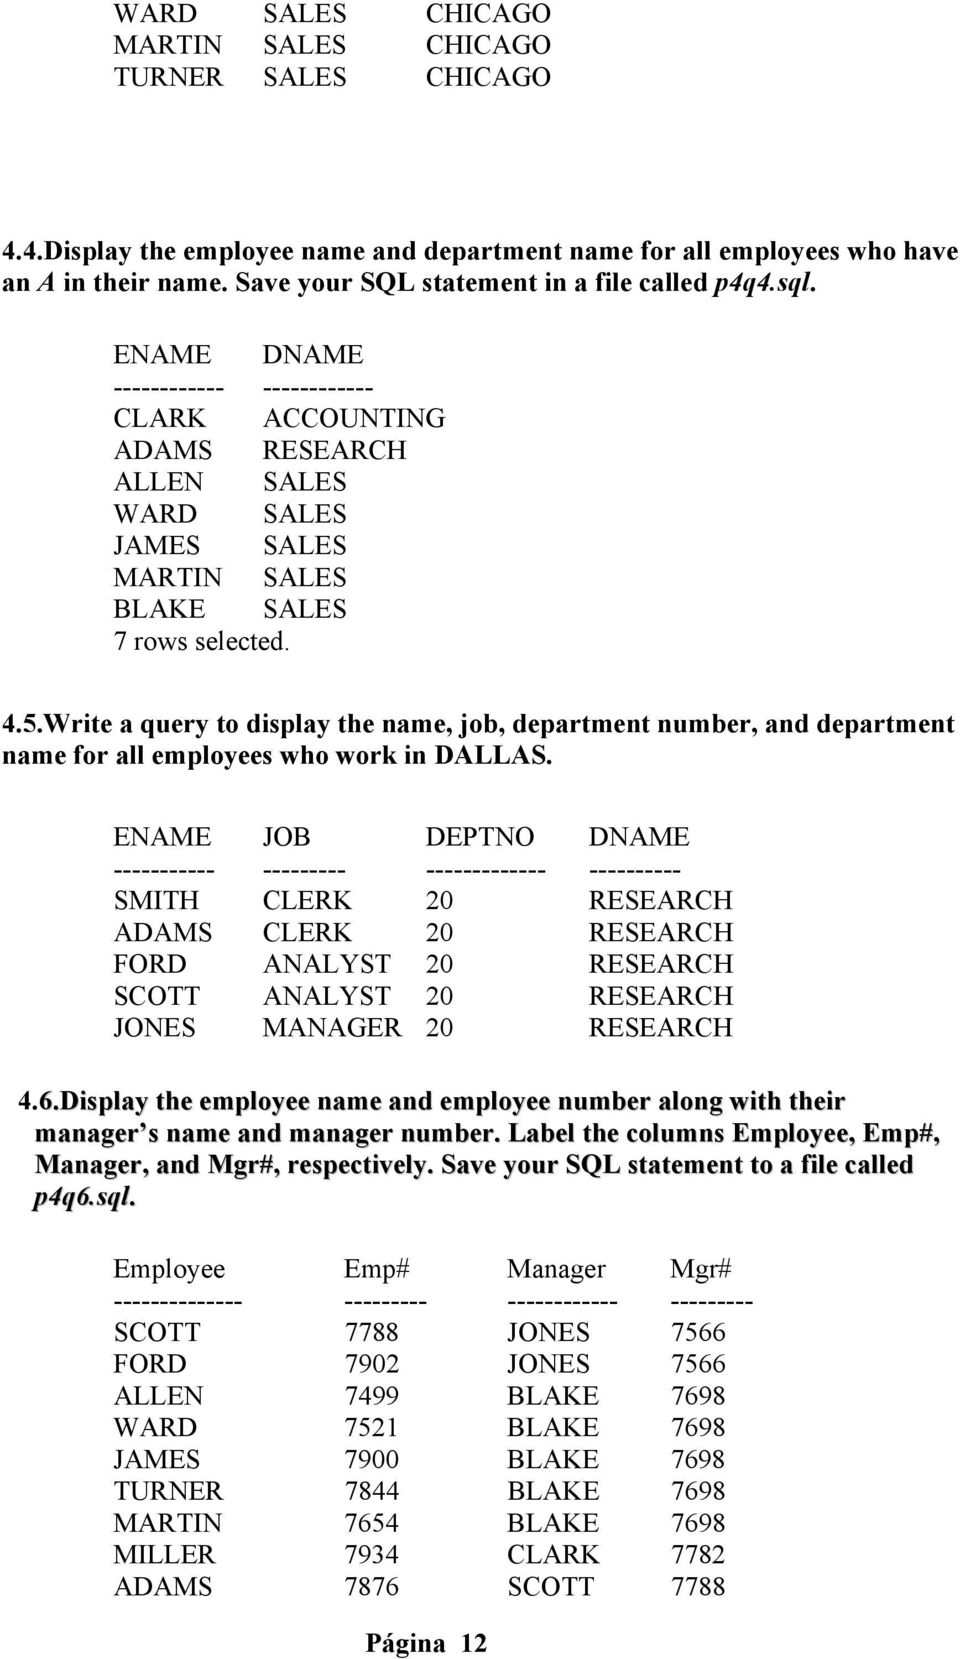 5.Write a query to display the name, job, department number, and department name for all employees who work in DALLAS.